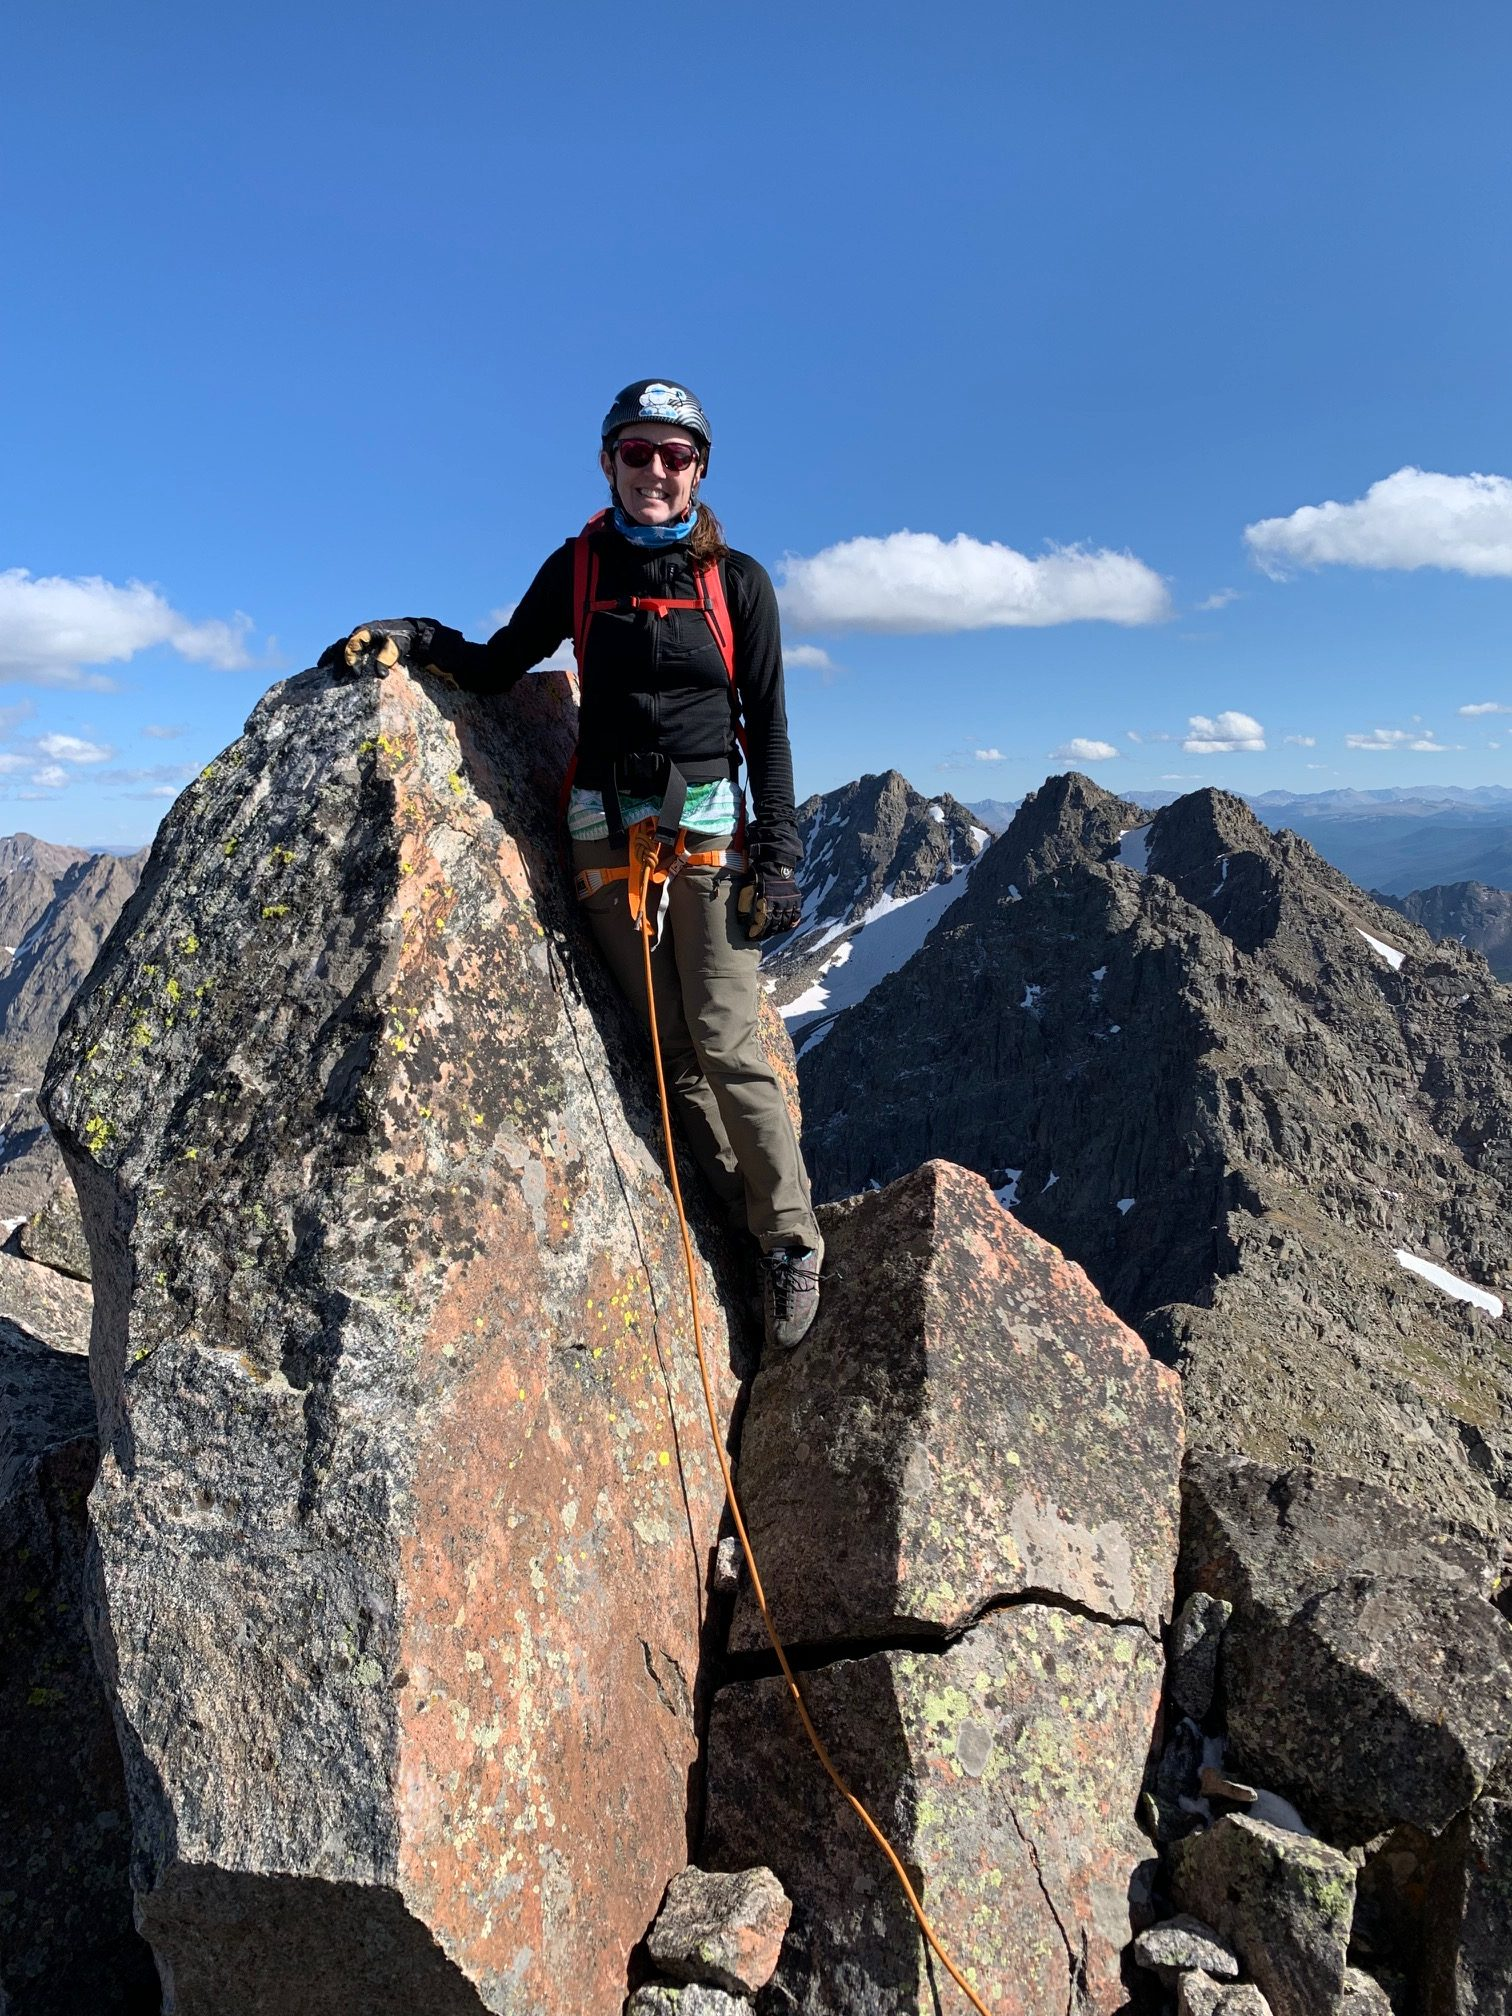 trace metcalfe on the Ripsaw Ridge in the Gore Range, Rocky Mountains, Colorado